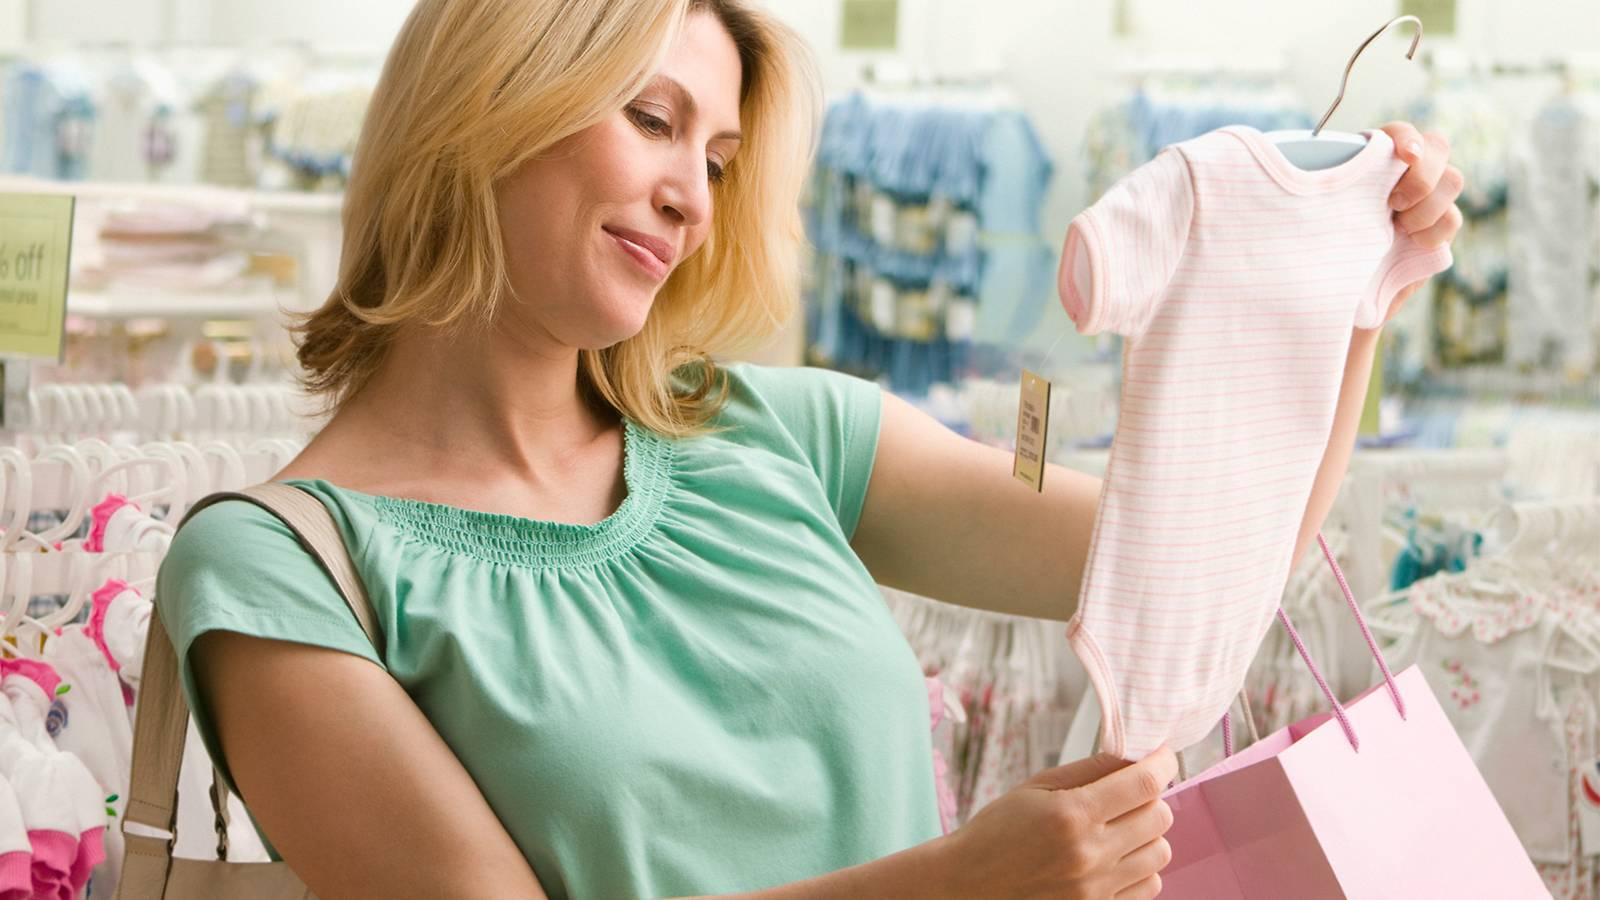 Babies-6-tips-on-buying-clothes-for-your-baby-1